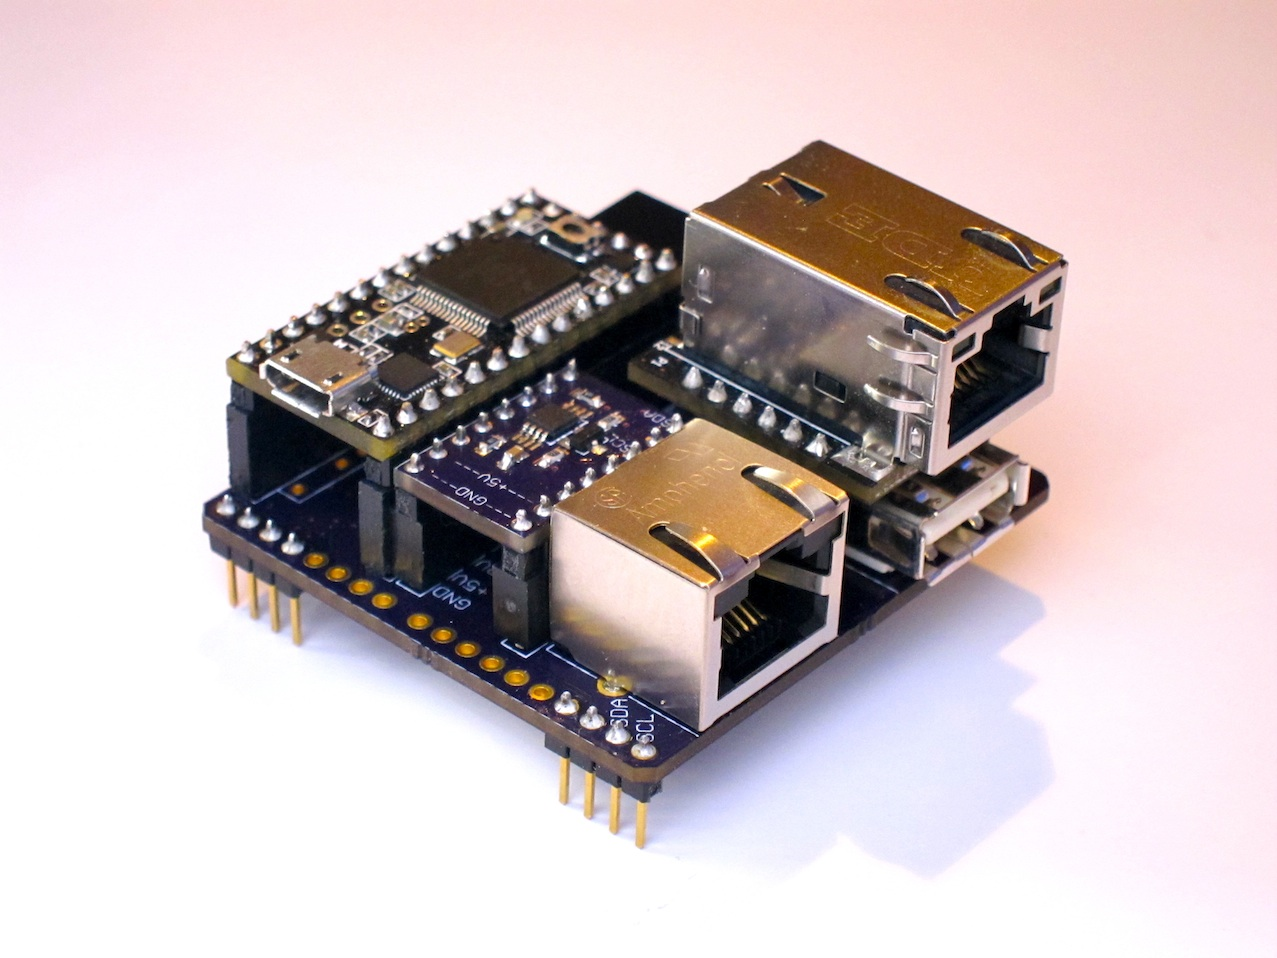 img_2379_small Datasheet Arduino Due on 4 serial ports, r3 pinout, no pins, bc847b, usb port, ups lithium, w5100 spi,